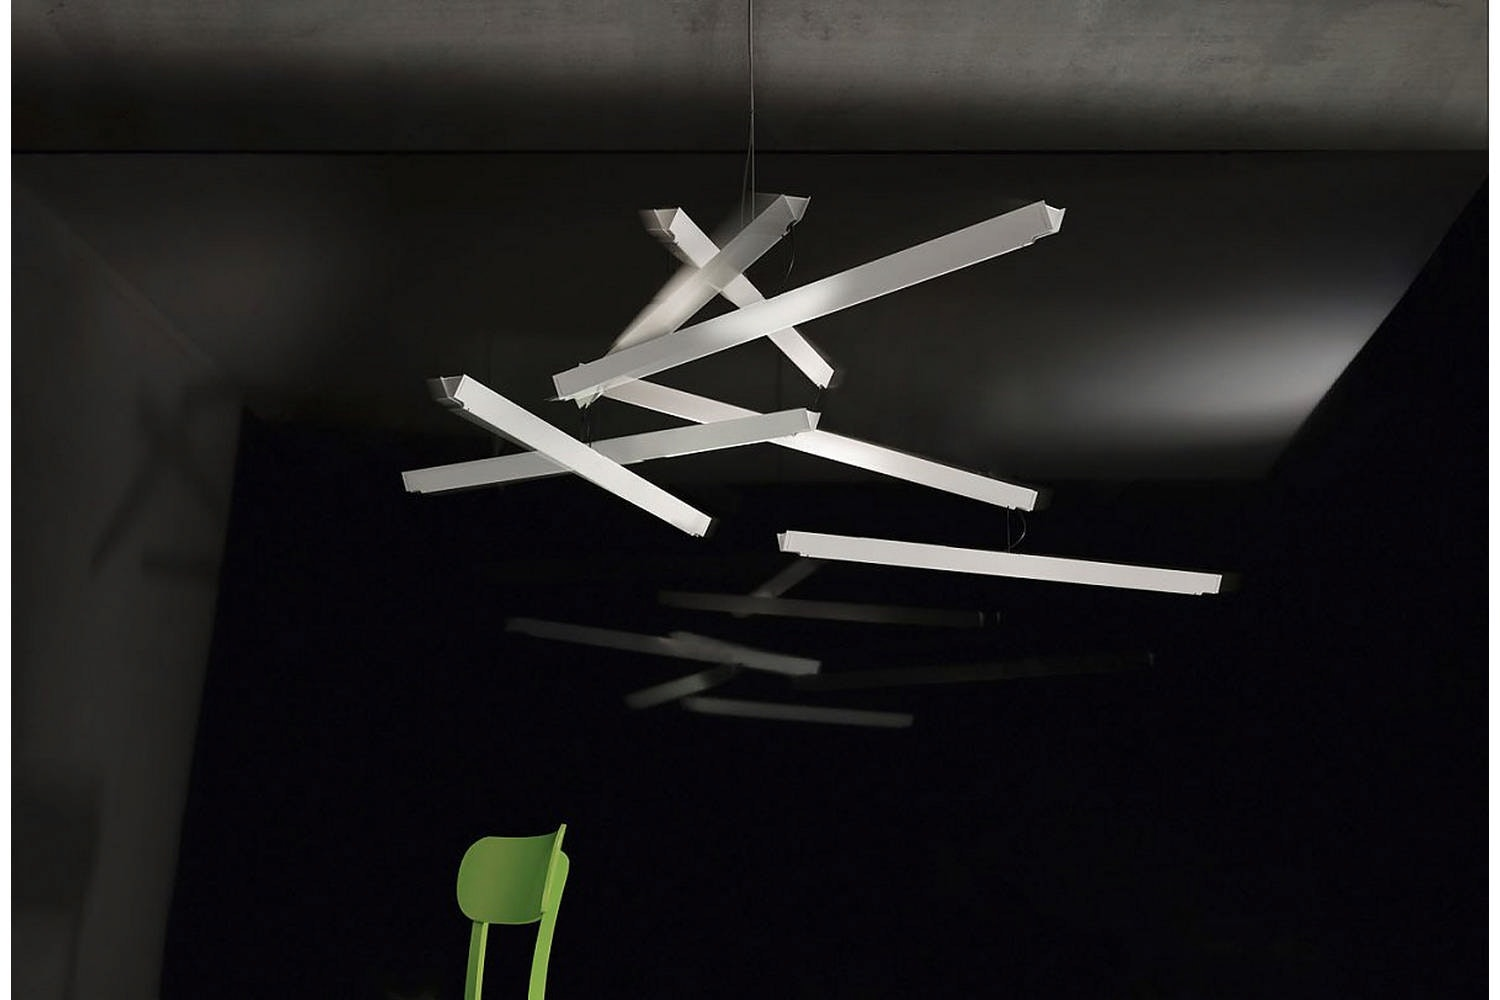 ManOMan Suspension Lamp by Ingo Maurer und Team for Ingo Maurer